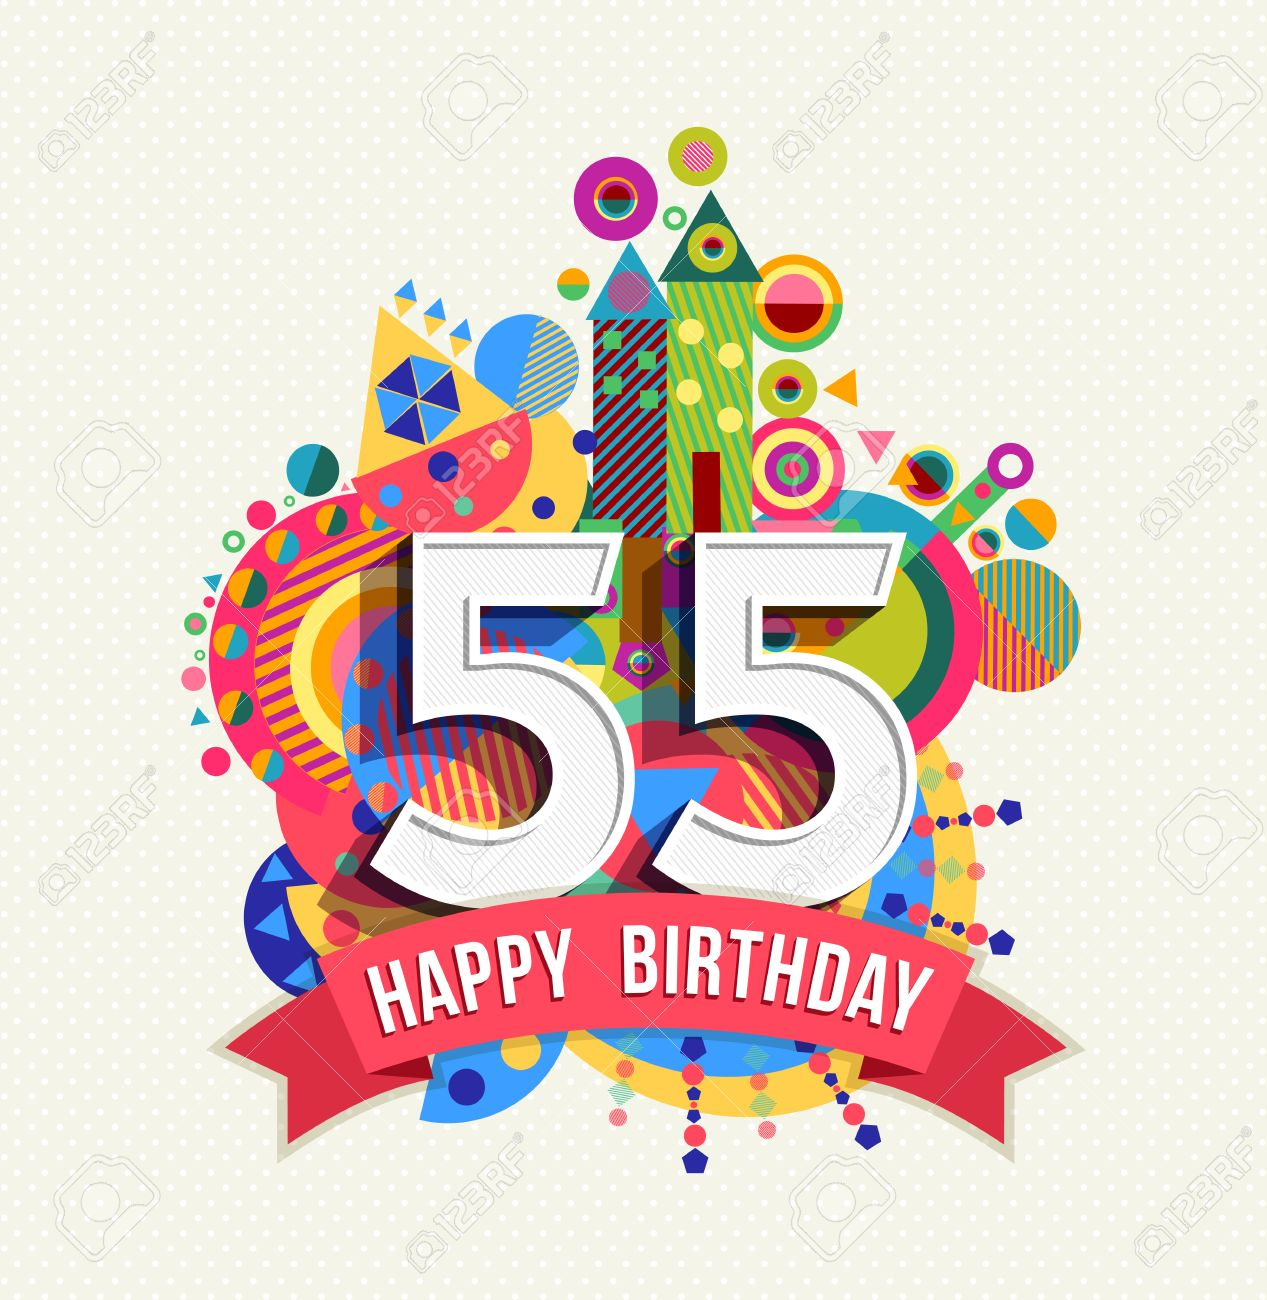 Happy Birthday fifty five 55 year, fun celebration greeting card with number, text label and colorful geometry design. - 51067758